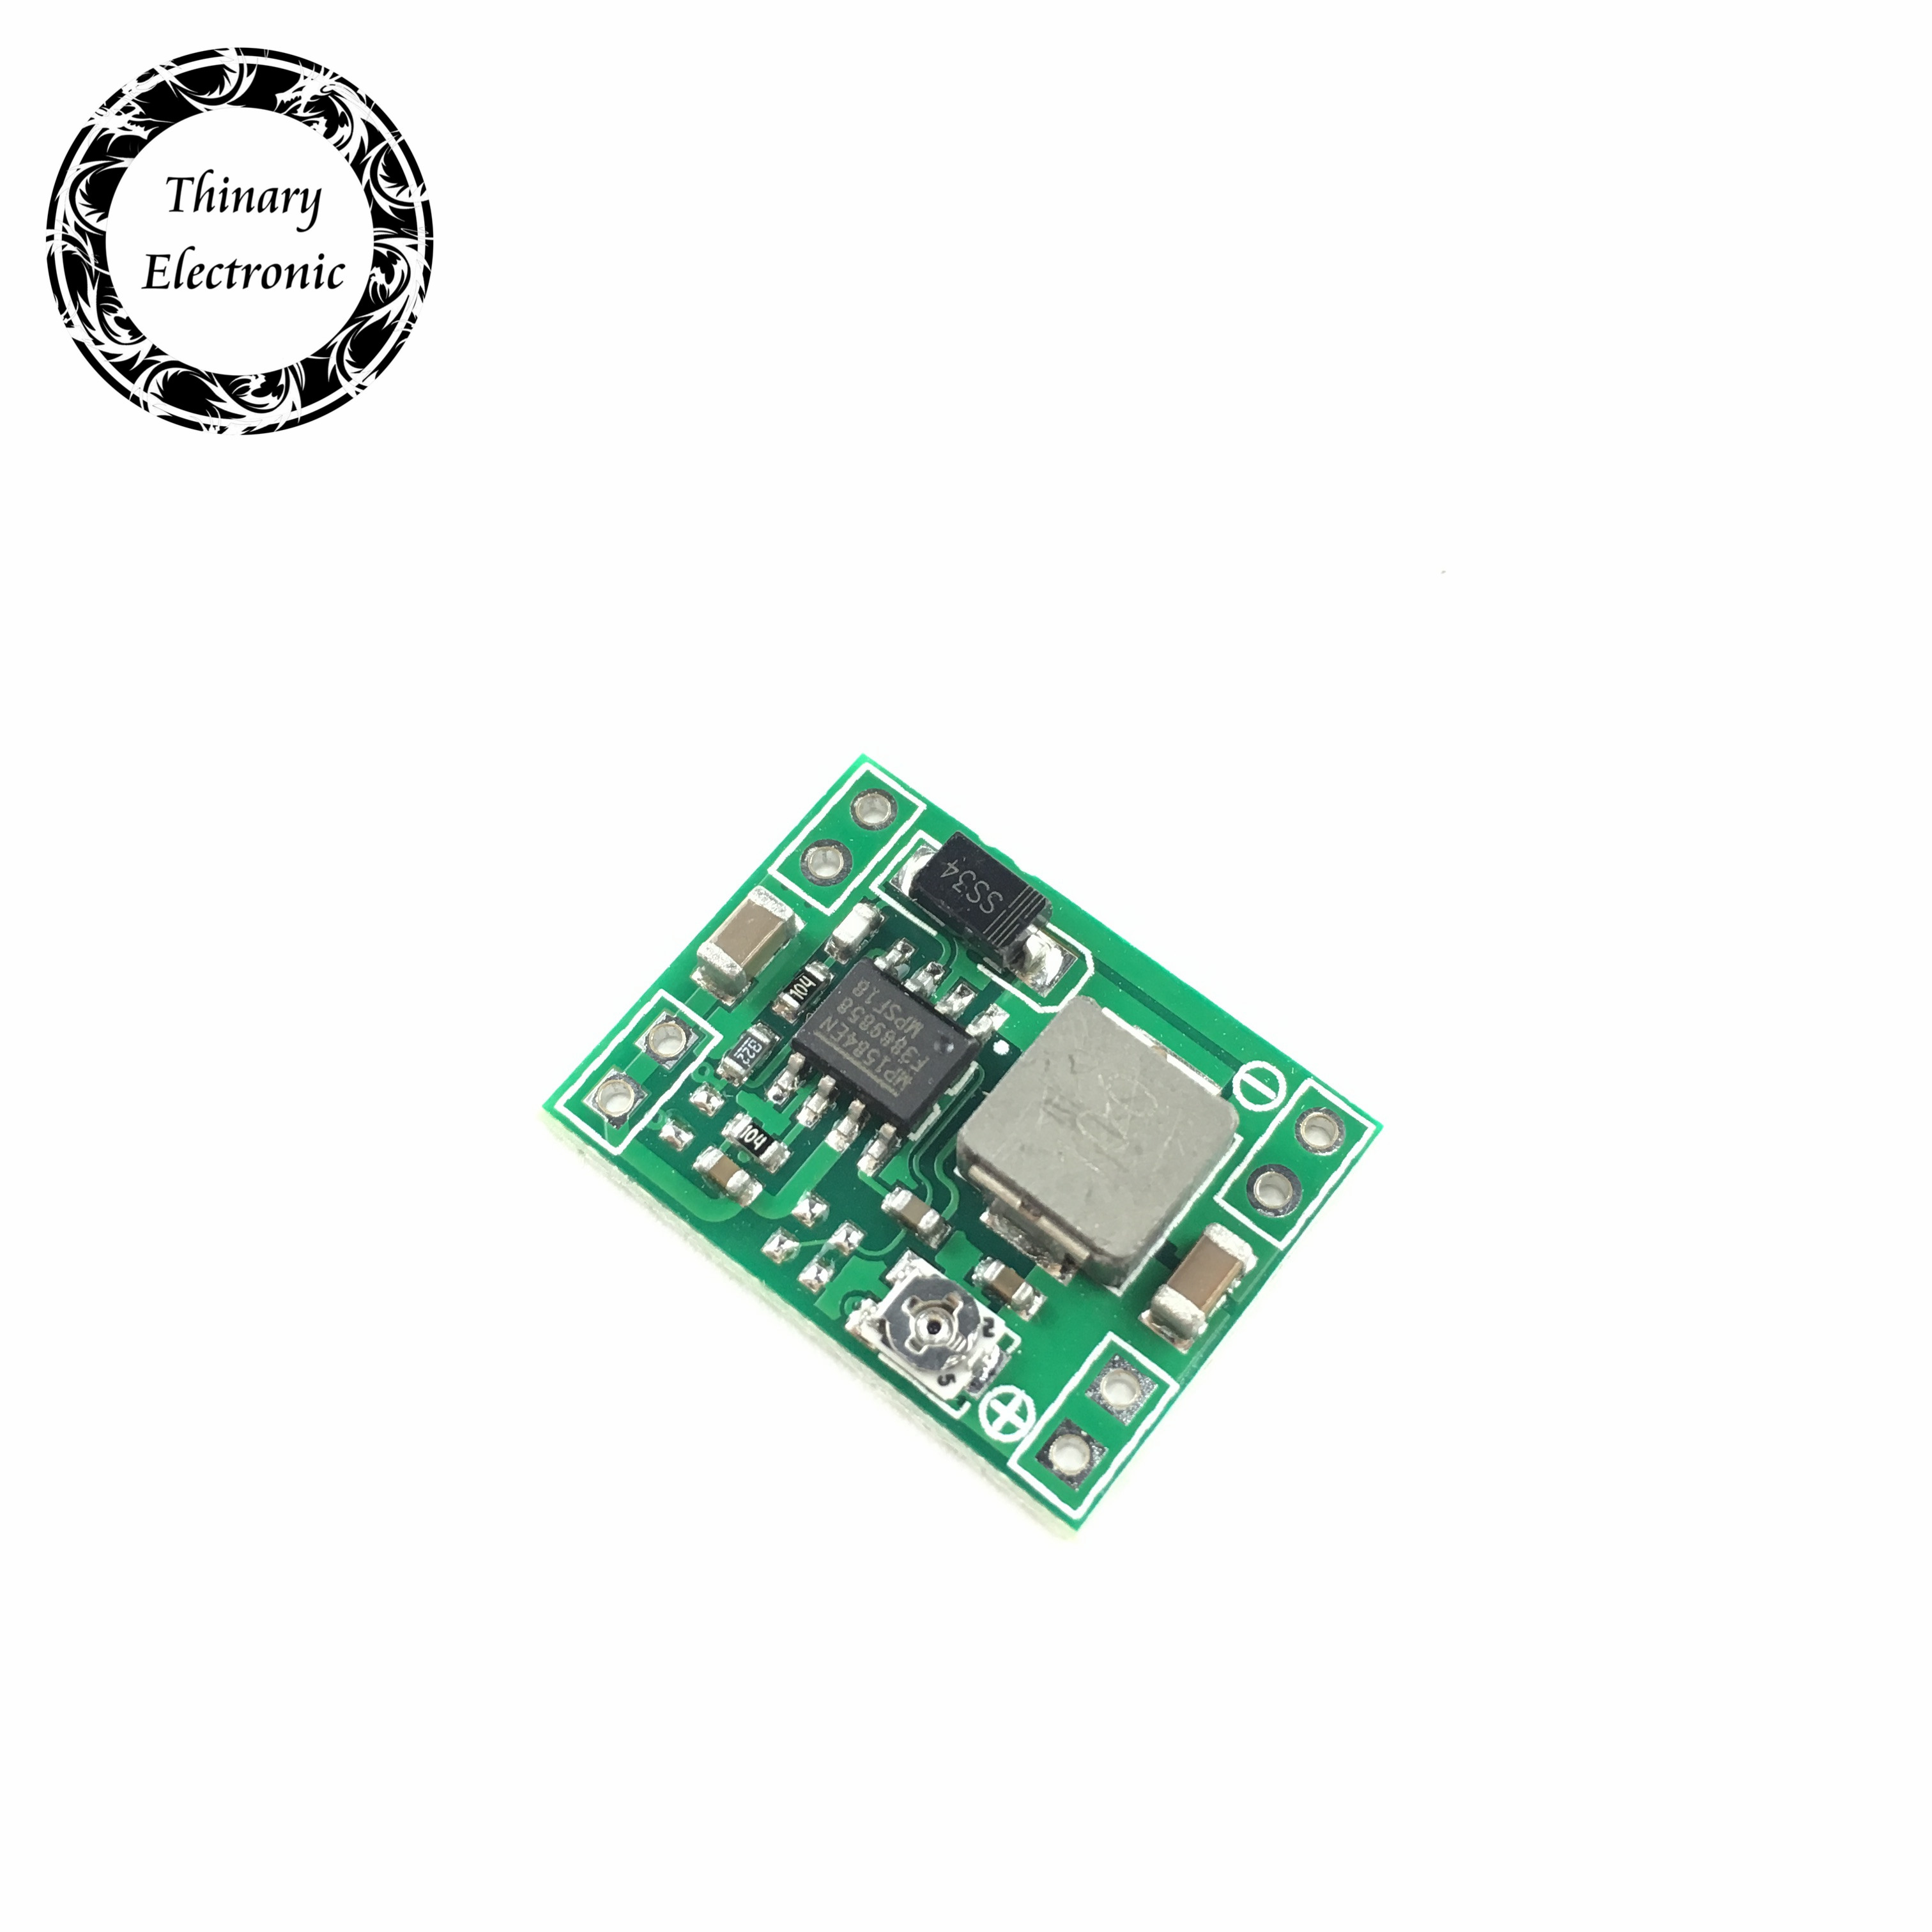 Thinary 100PCS Ultra small power supply module DC DC BUCK 3A MP1584 MP1584EN adjustable buck module regulator ultra LM2596S-in Integrated Circuits from Electronic Components & Supplies